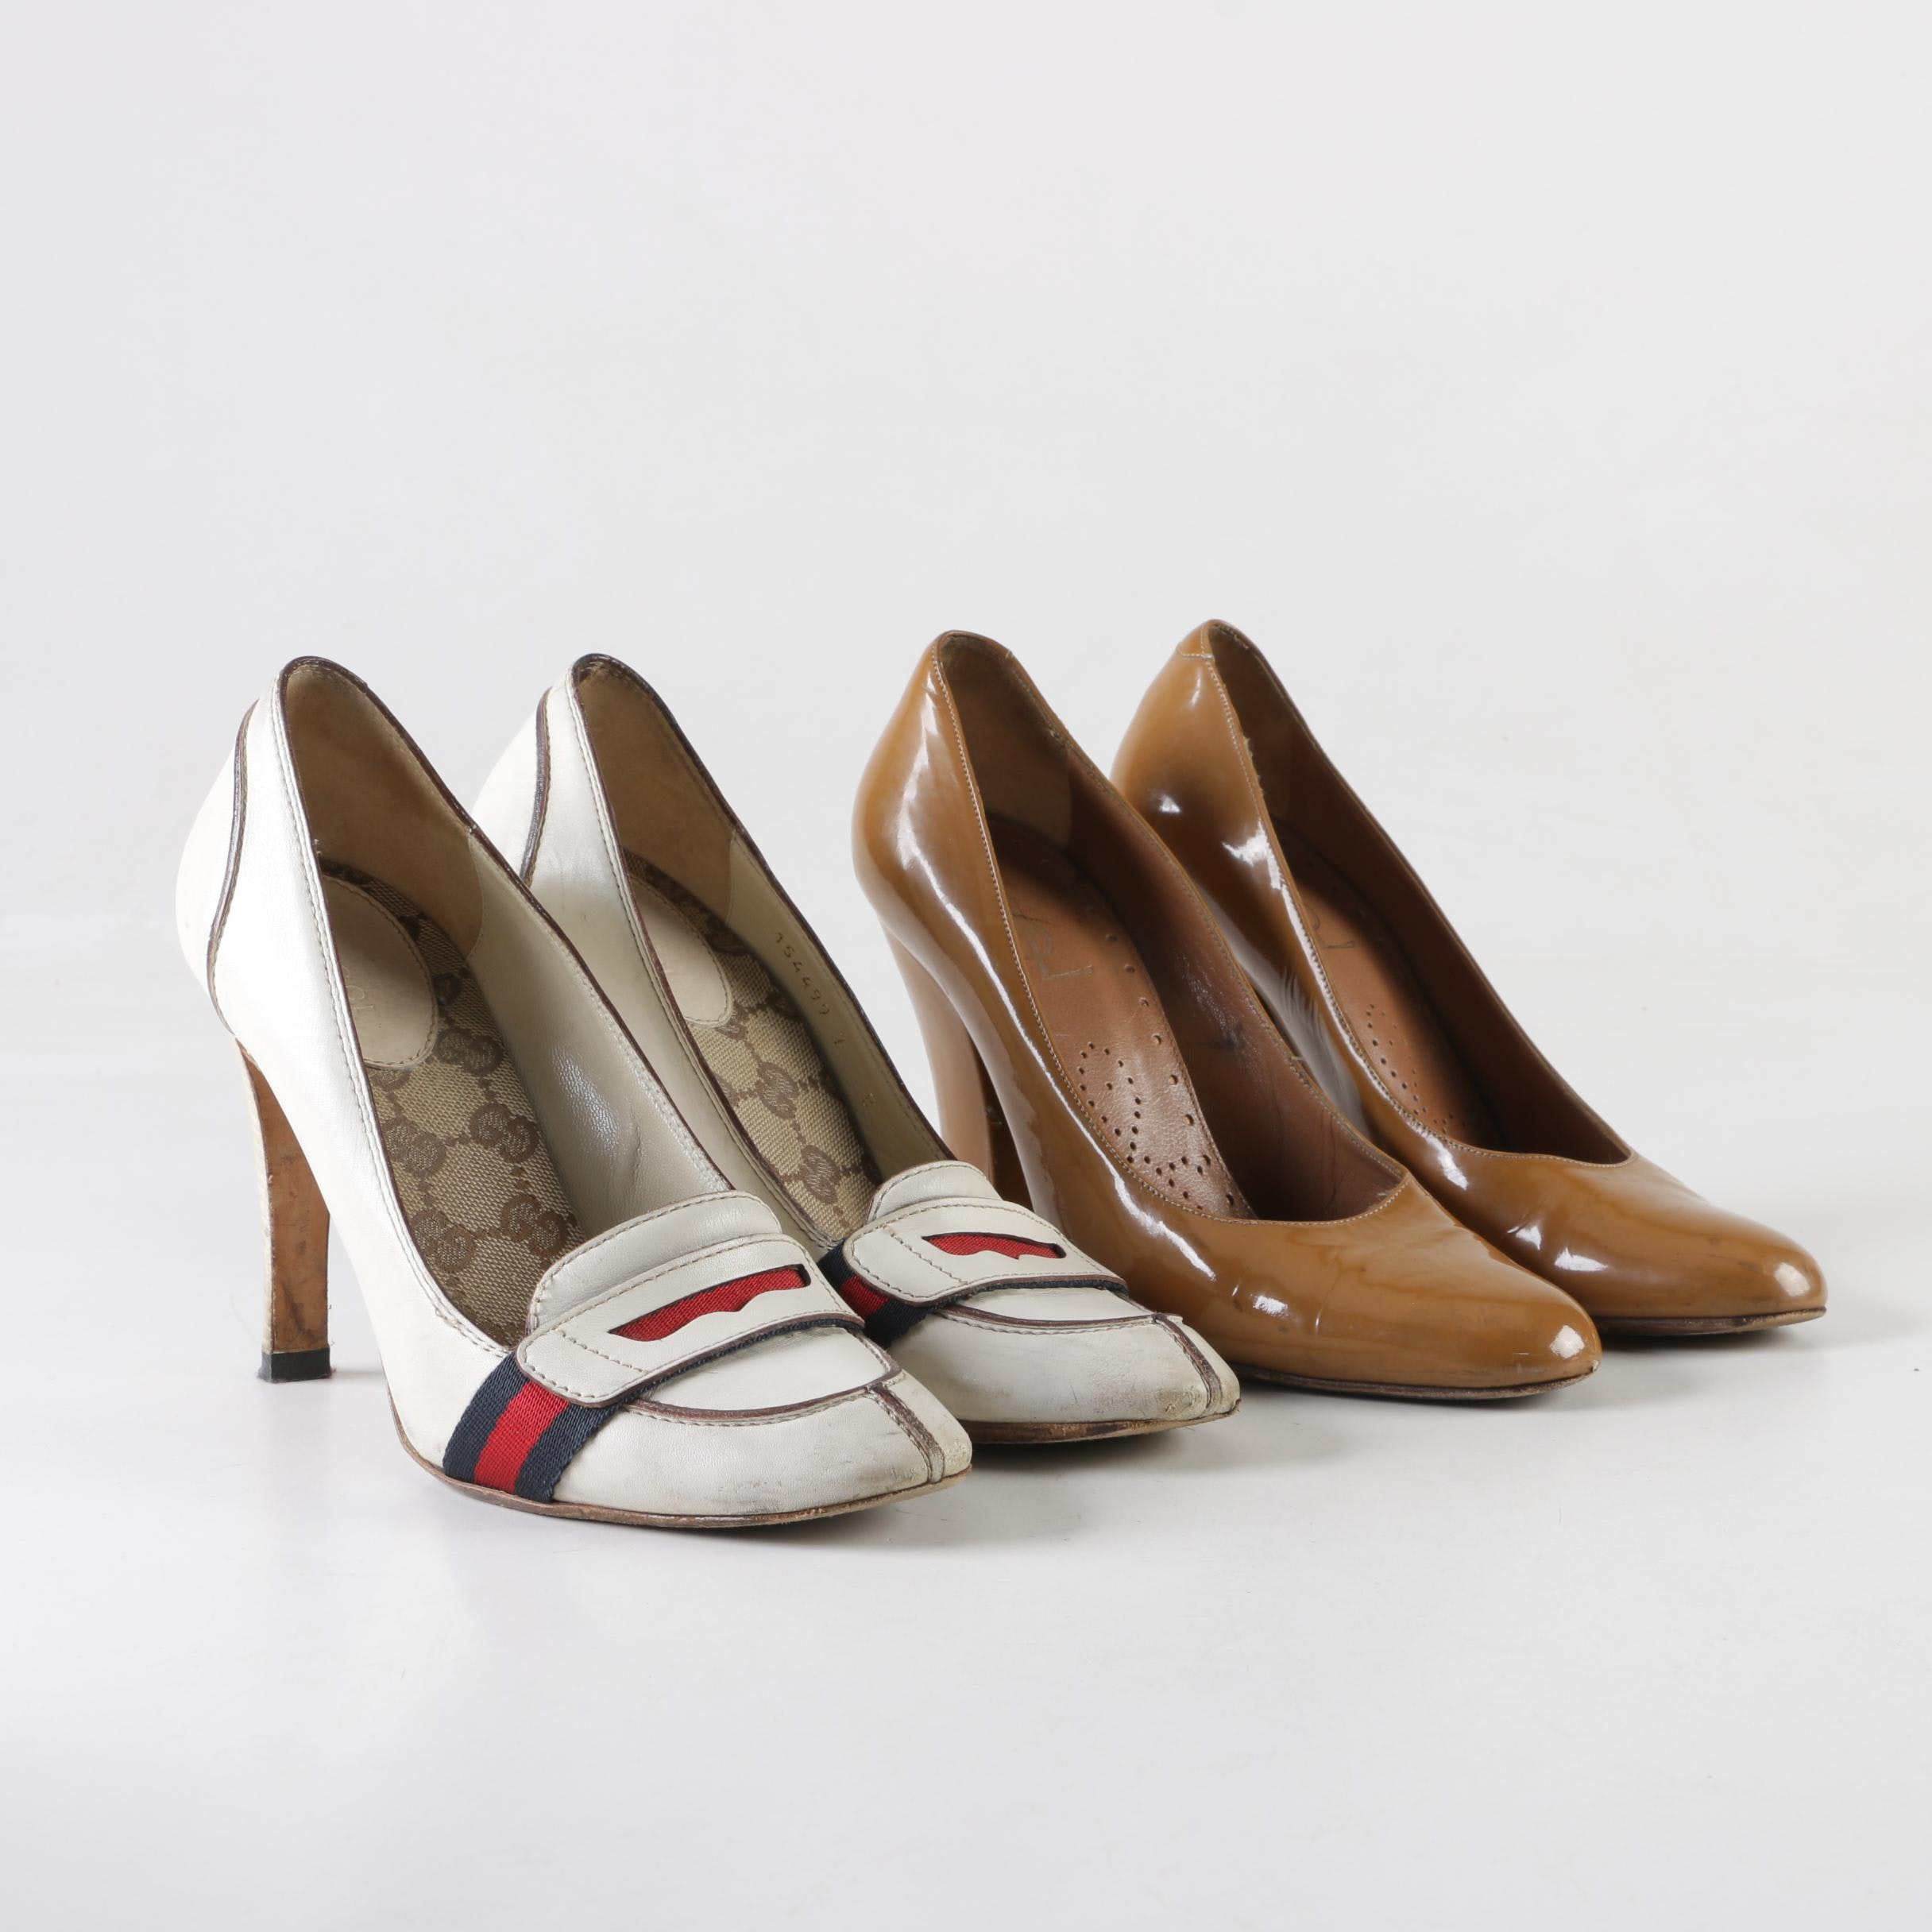 Gucci Lifford Loafer Pumps and Yves Saint Laurent Patent Leather Pumps